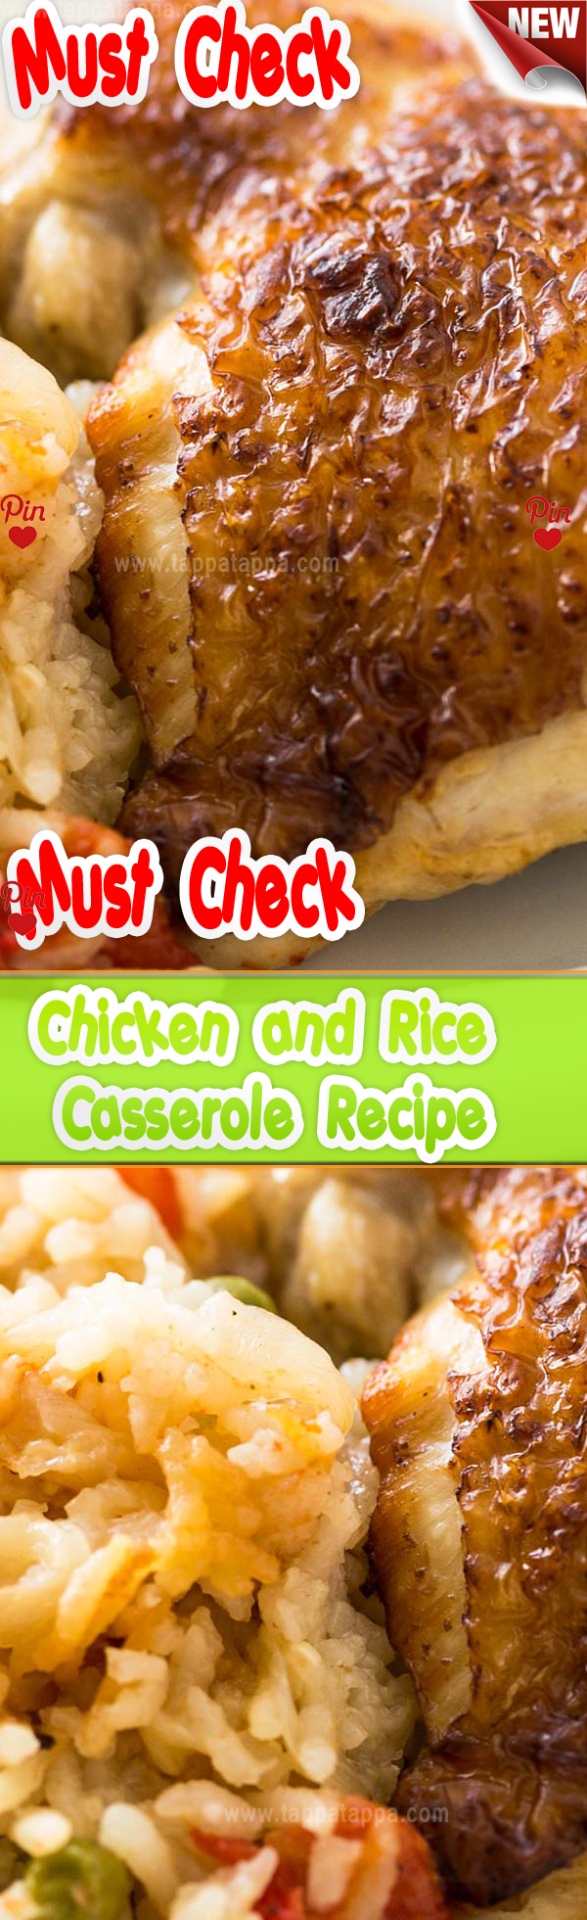 Crock Pot Chicken and Rice Casserole Recipe . INGREDIENTS 2 pounds bone-in skin-on chicken thighs (or 1  pounds boneless skin-on chicken thighs) Kosher salt 2 tablespoons extra virgin olive oil 4 cups sliced yellow onion -inch thick slices sliced root to tip (about 2 large onions) 1 teaspoon ground cumin  teaspoon ground cinnamon 4 teaspoons finely chopped garlic (about 4 cloves) 2 cups raw basmati long grain rice 1 cup diced canned (or fresh) tomatoes  cup frozen peas (optional) 1  cups chicken #spanishmeals